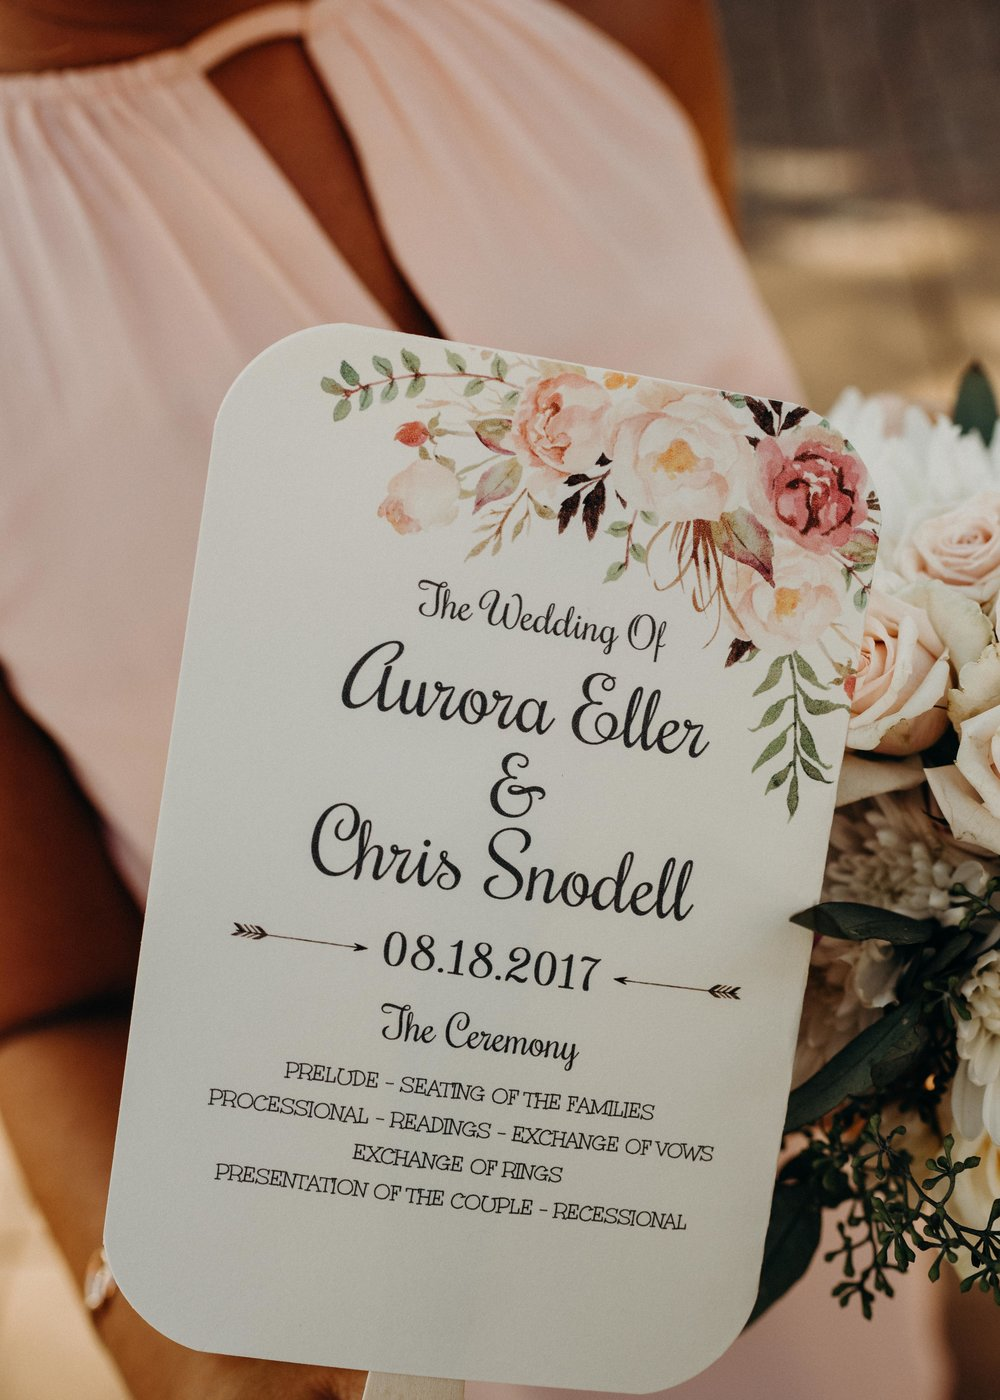 Aurora & Chris Snodell | Blog | Black Coffee Photo Co 13.jpg